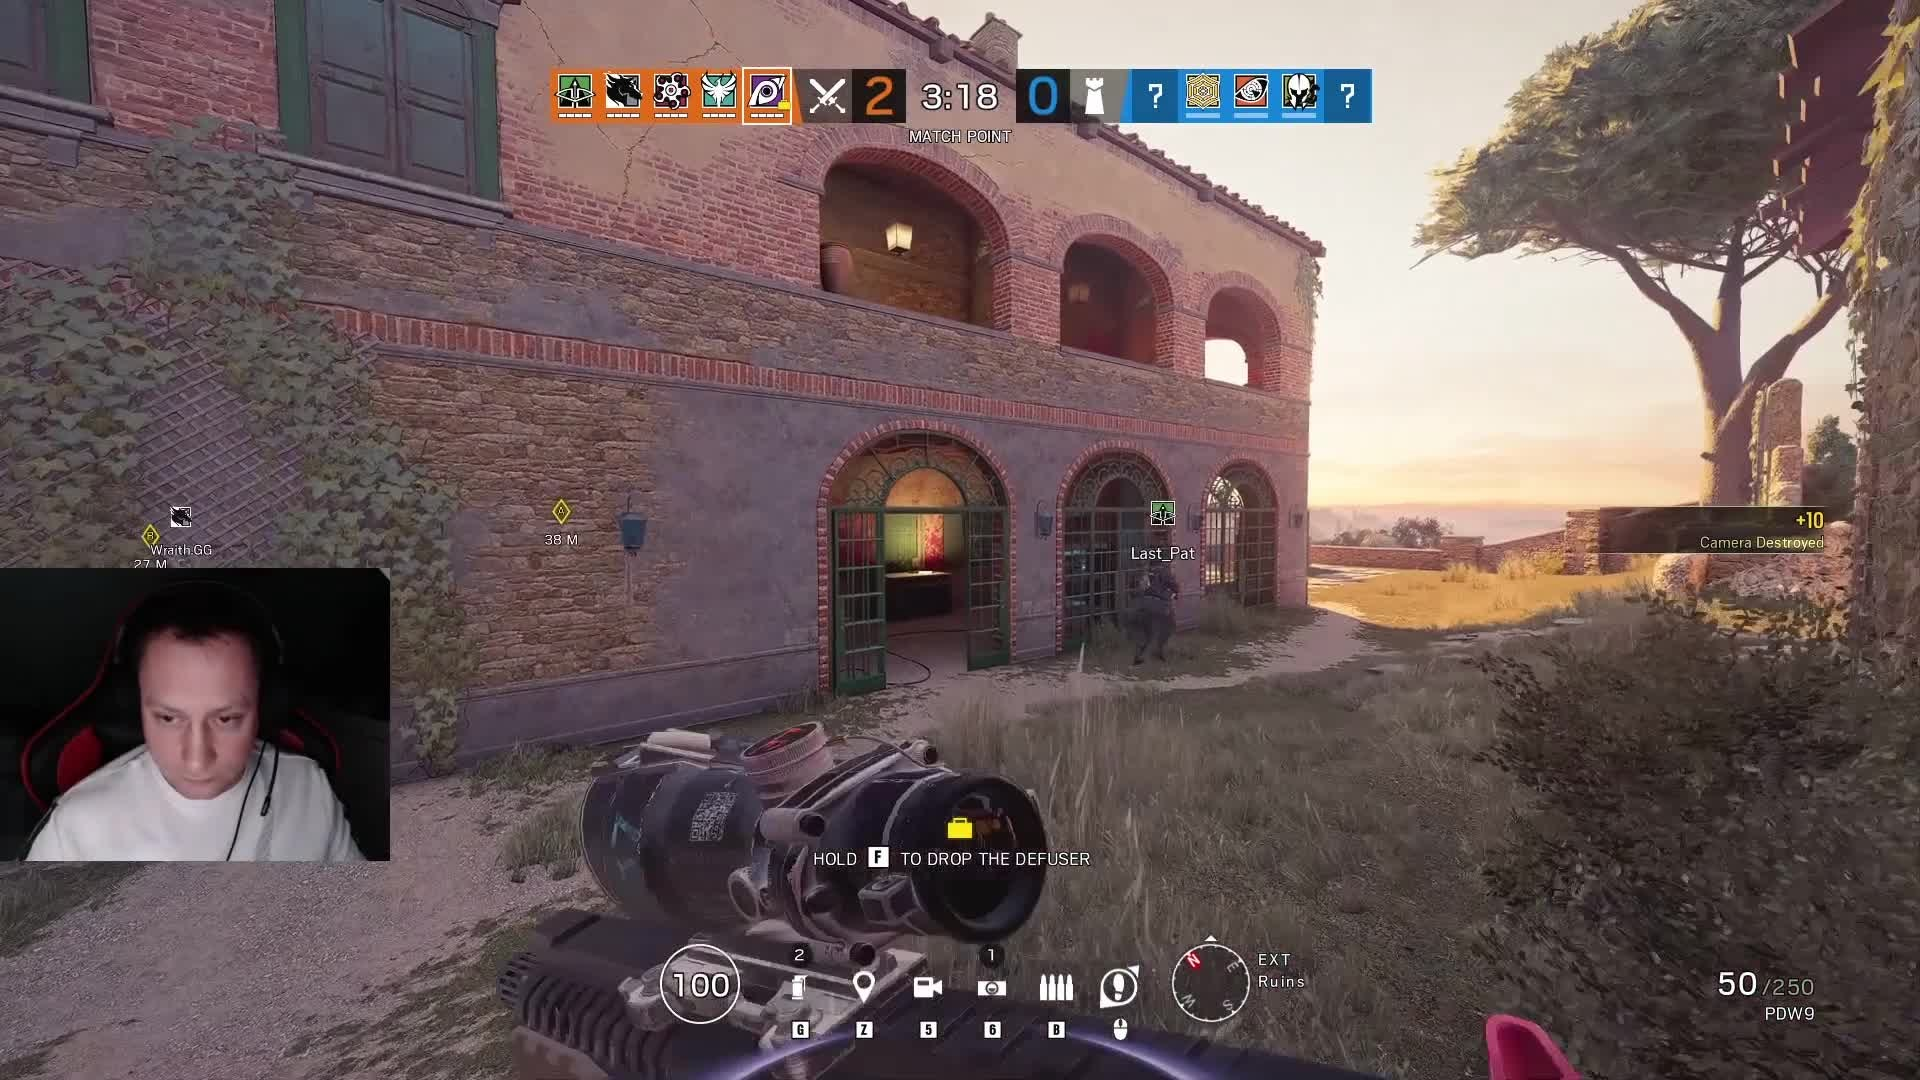 Rainbow Six: General - 60 Second Jackal Ace Stolen By Wraith.GG 😥 video cover image 1